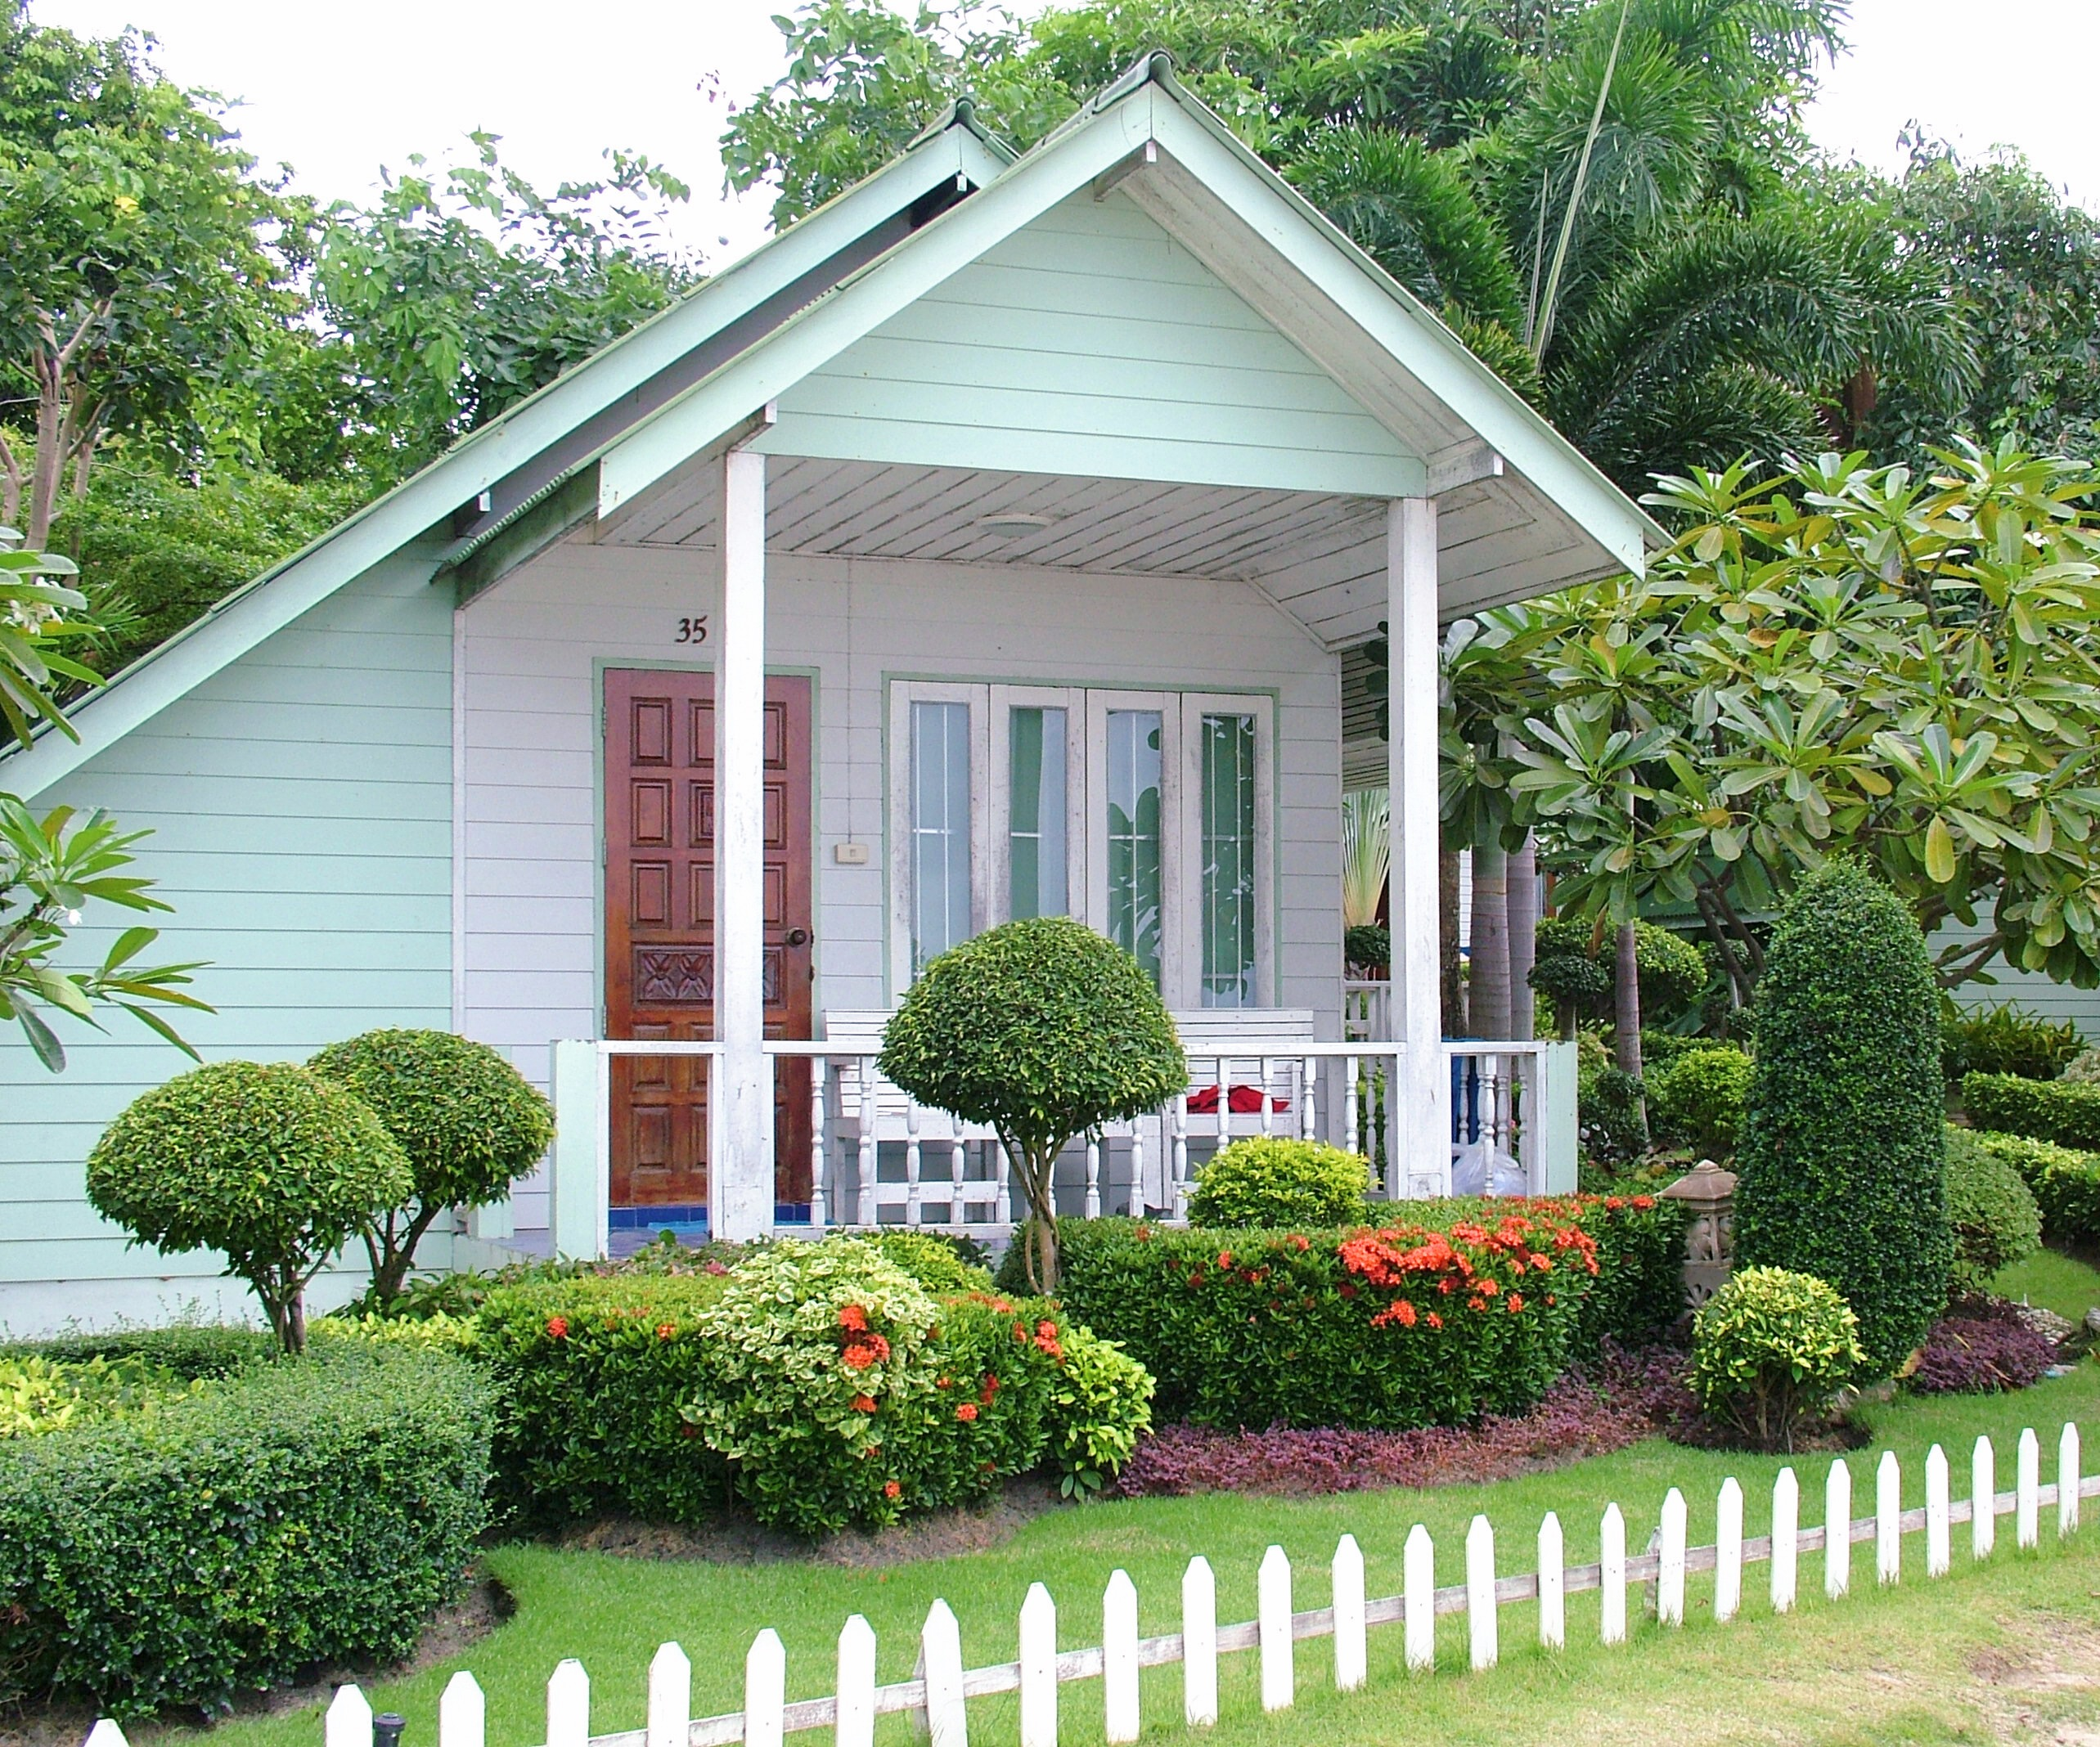 A bungalow style house in a tropical area painted mint green with shrubs and small trees.